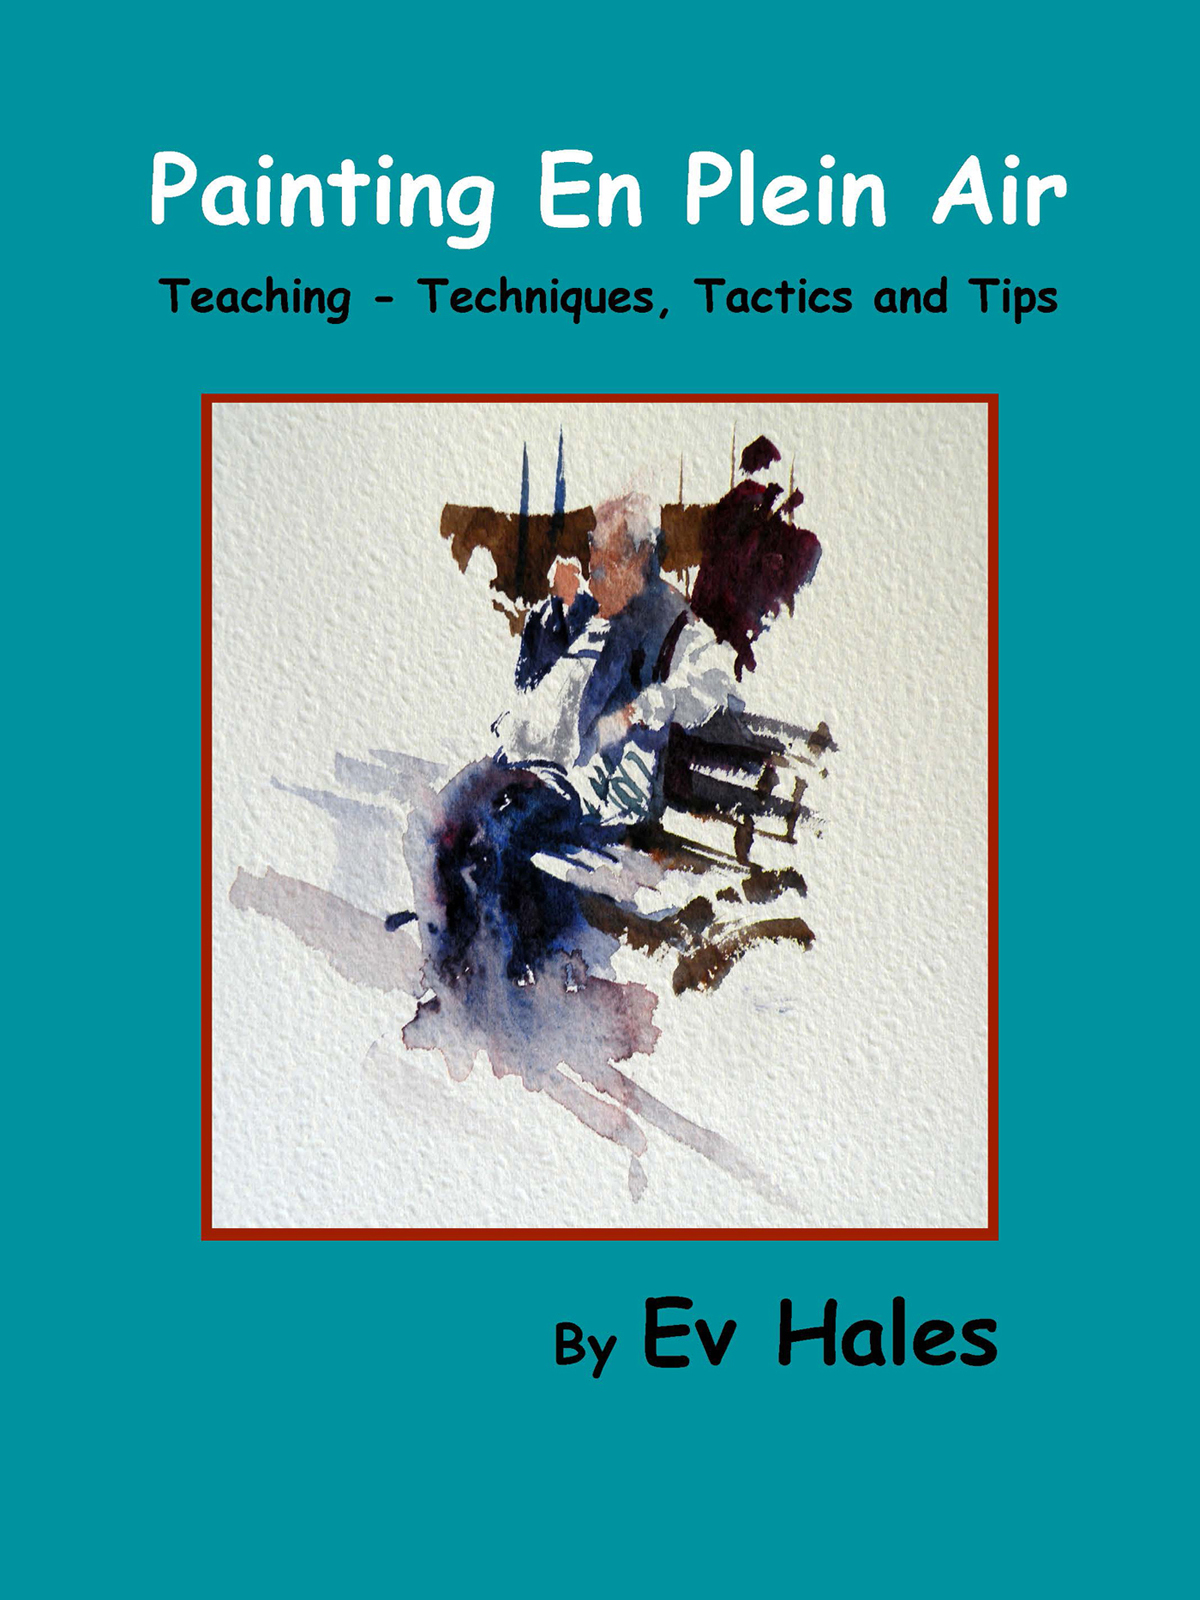 Painting En Plein Air: Teaching - Techniques, Tactics, Tips